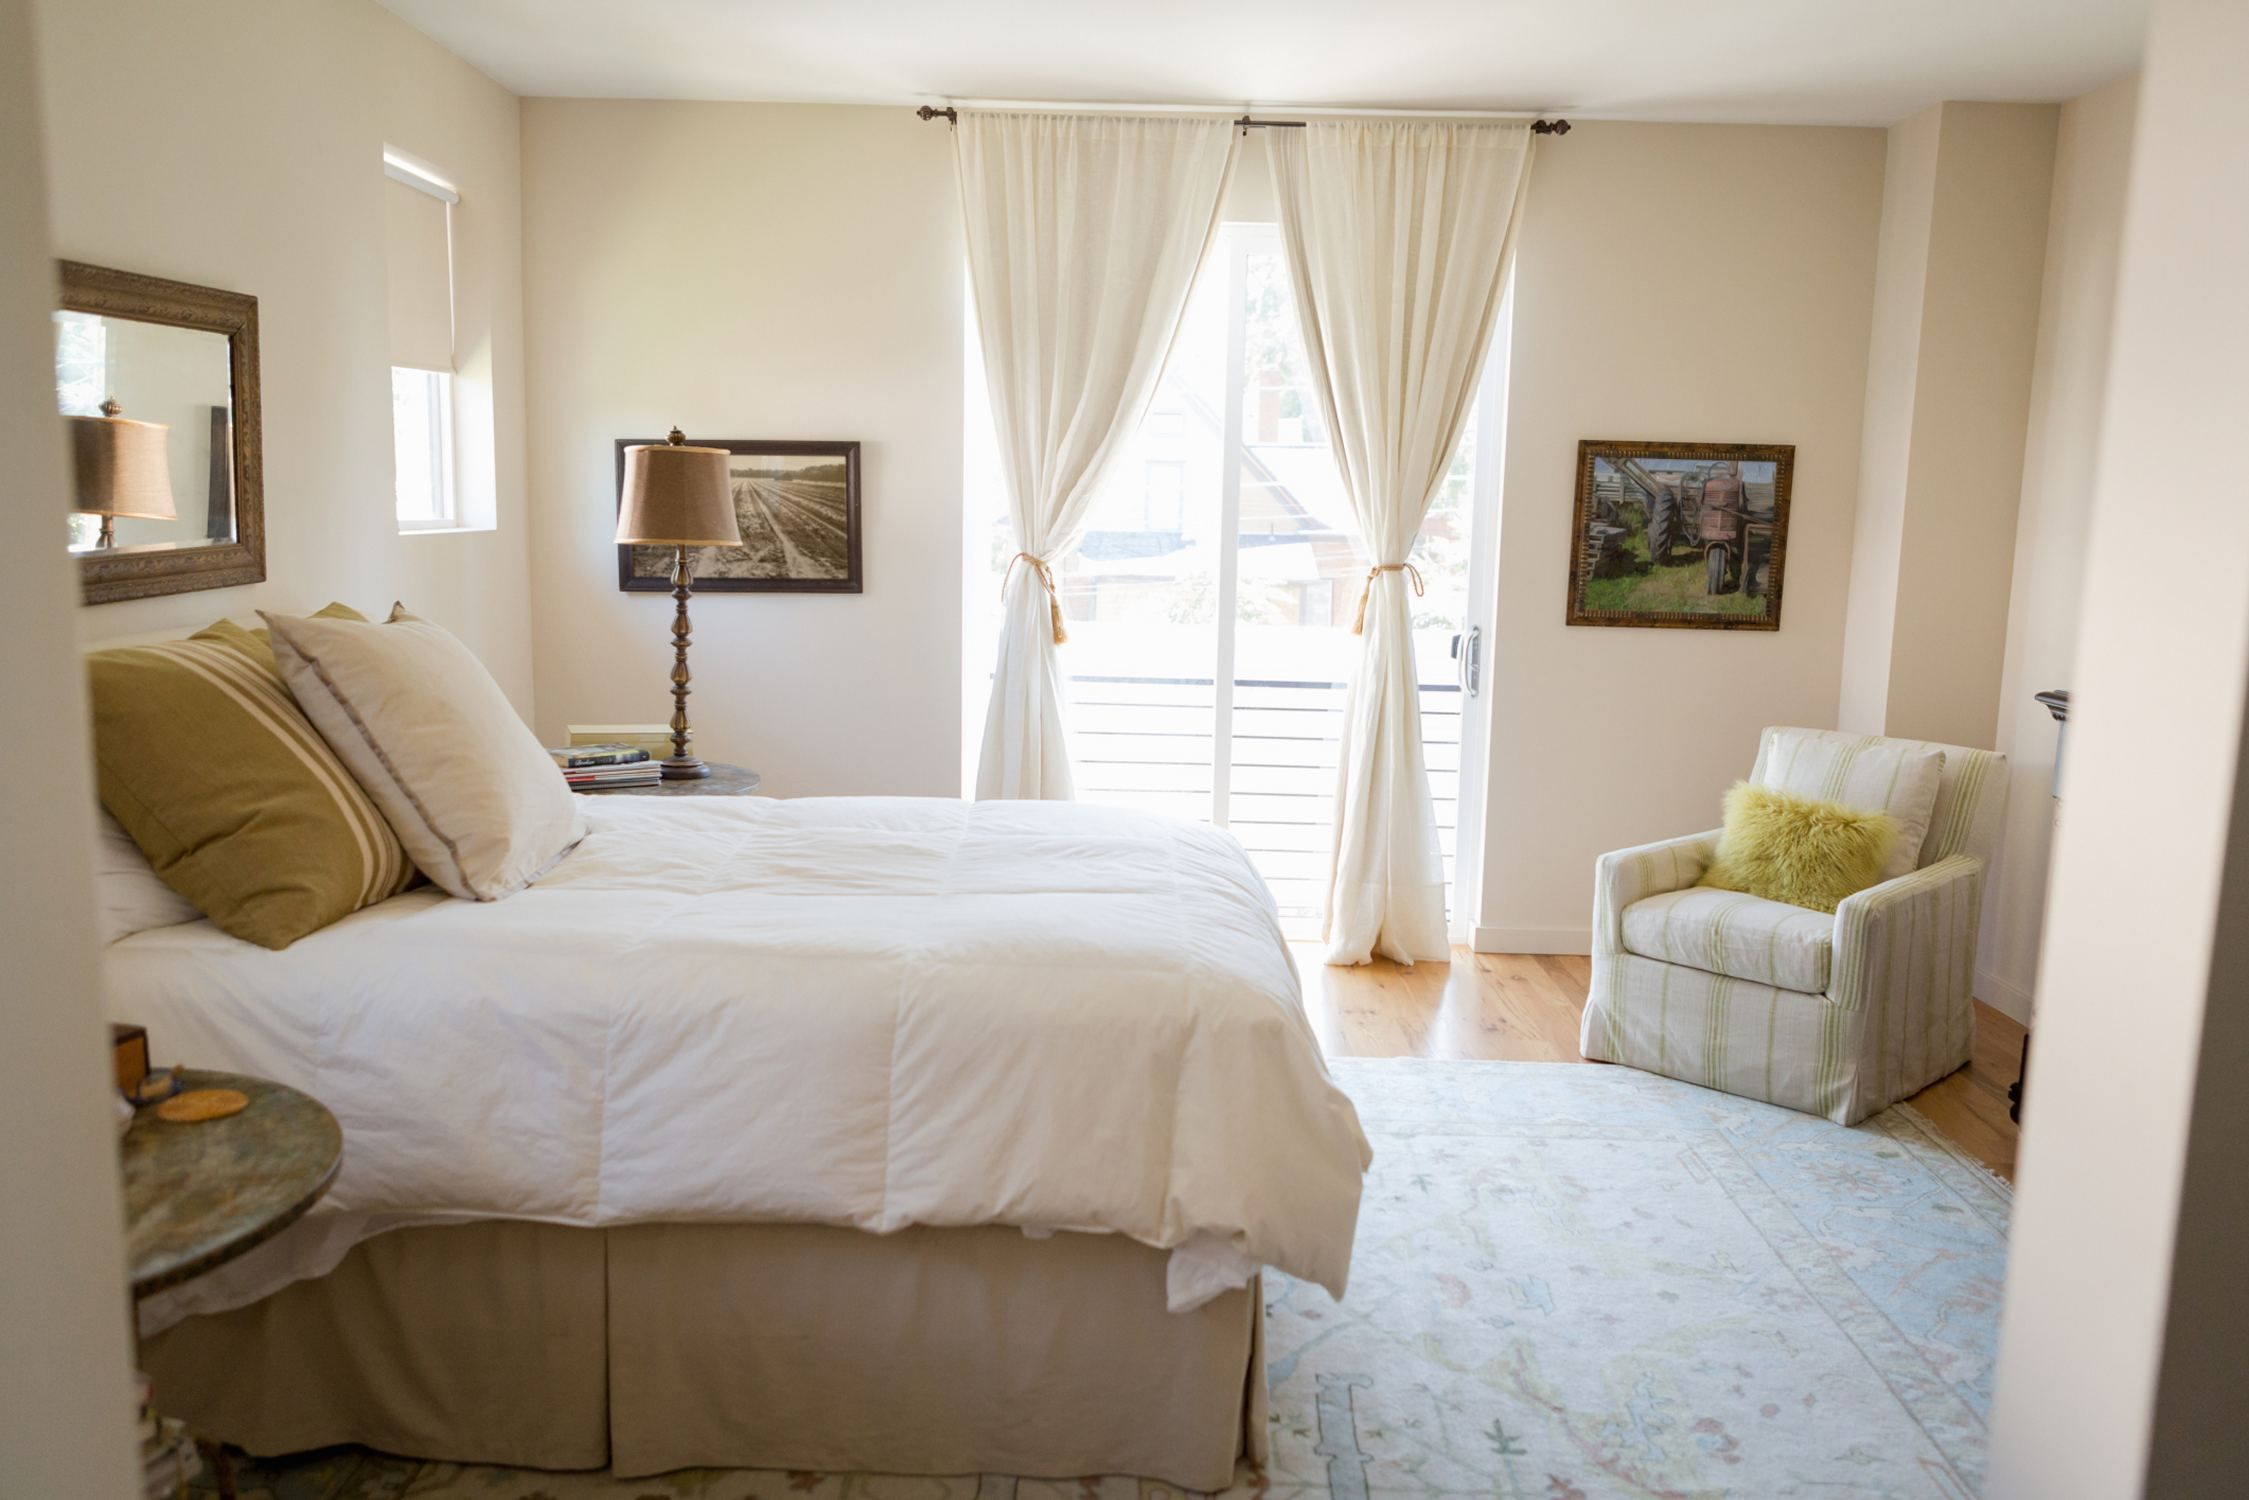 How to Organize Every Room in Your Home Home, Bedroom